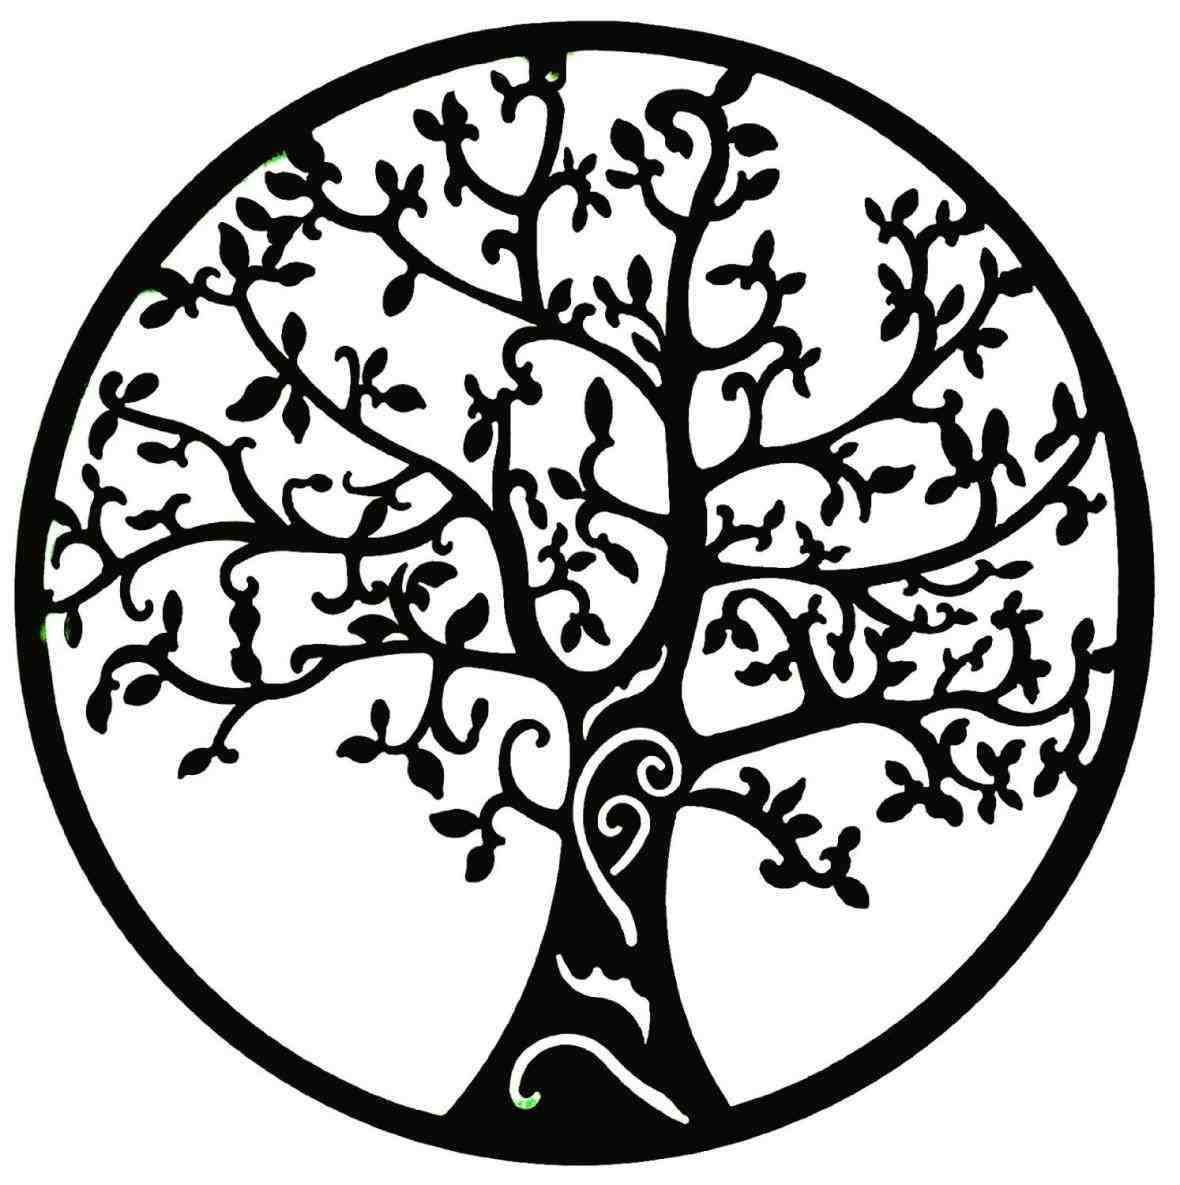 Simple Black And White Tree Of Life Drawings Ngorong